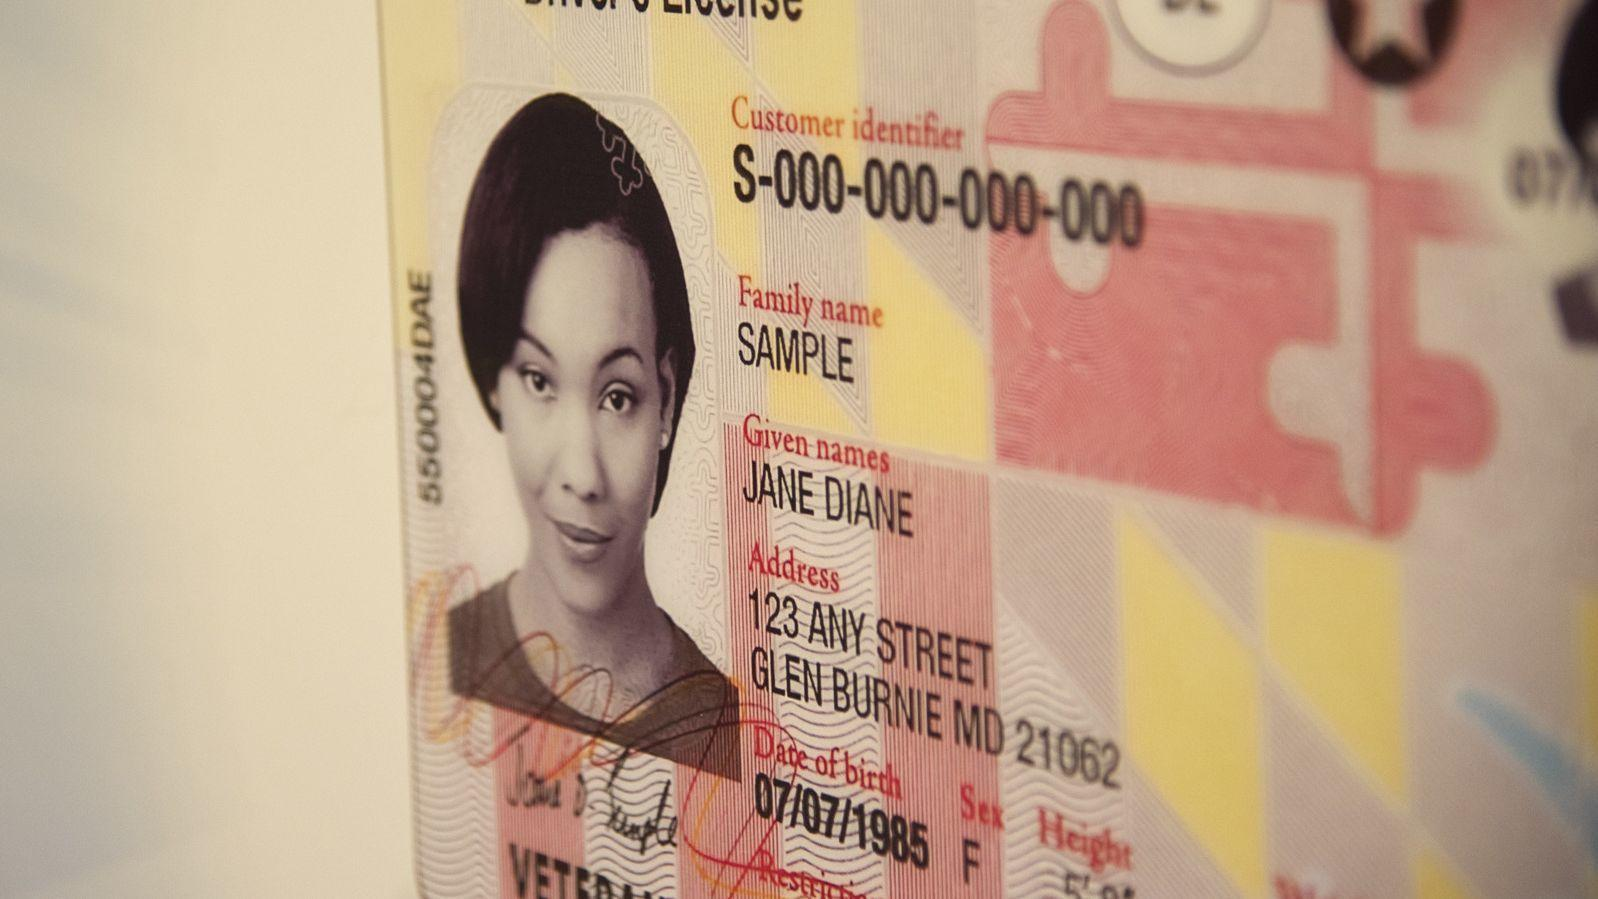 M, F or X: Democratic senator's bill would allow gender-neutral option for Maryland driver's licenses